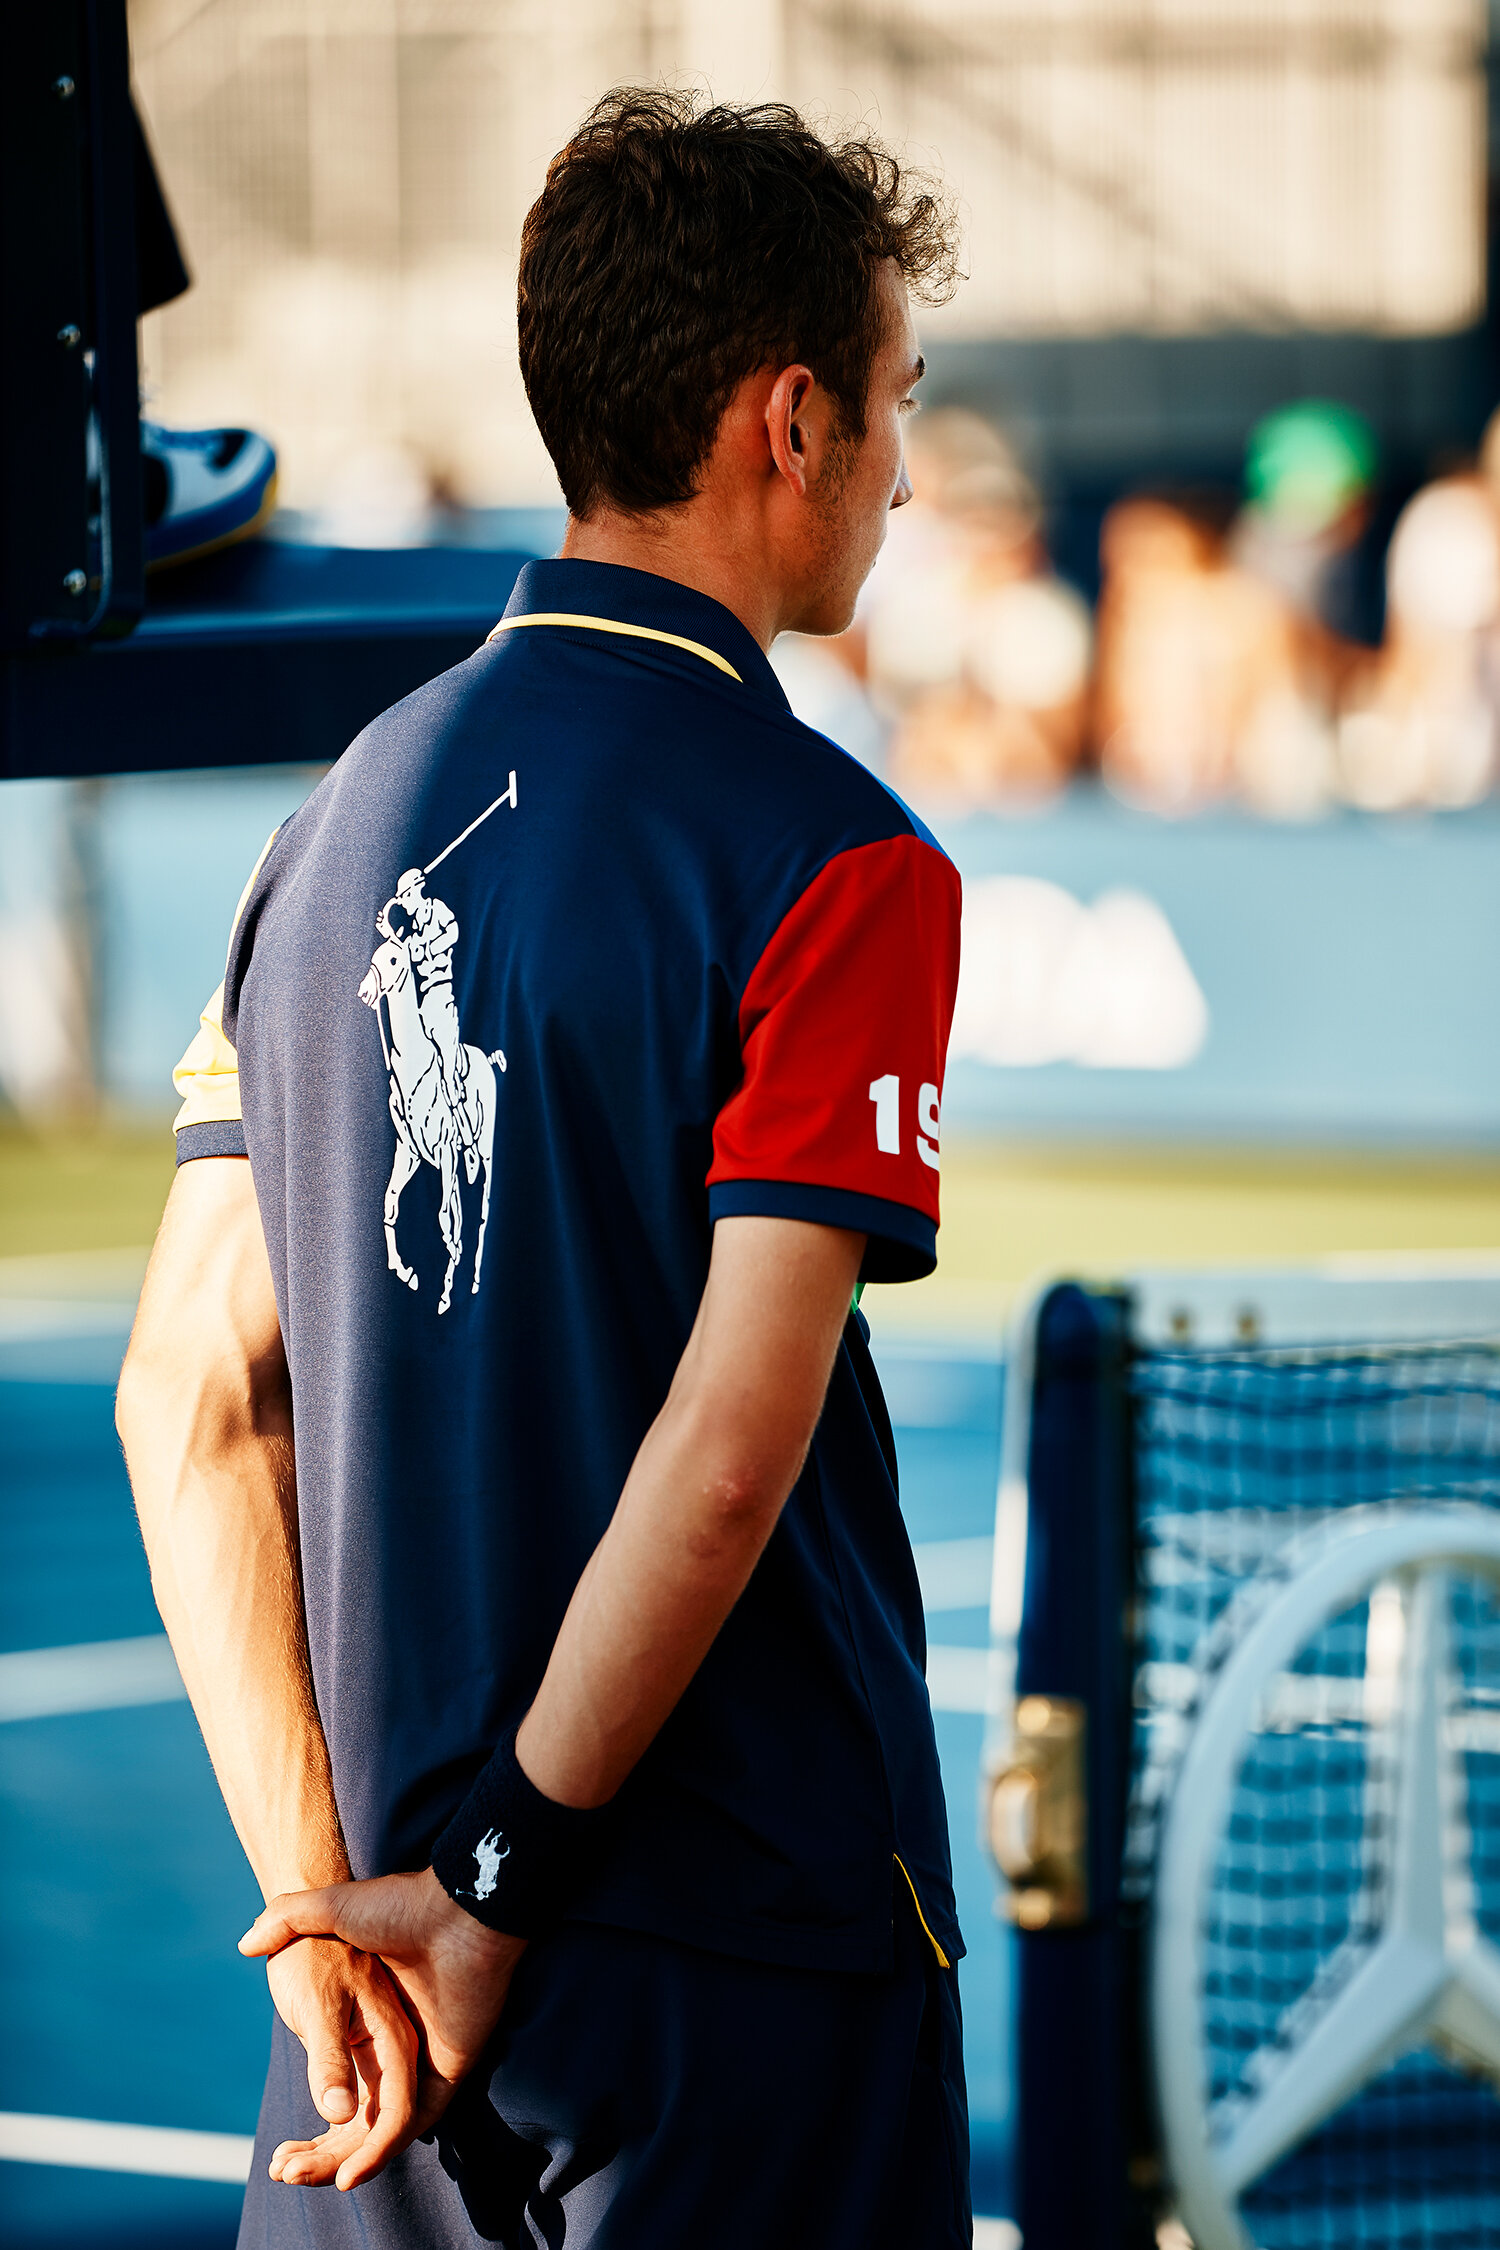 US Open uniforms | Ralph Lauren